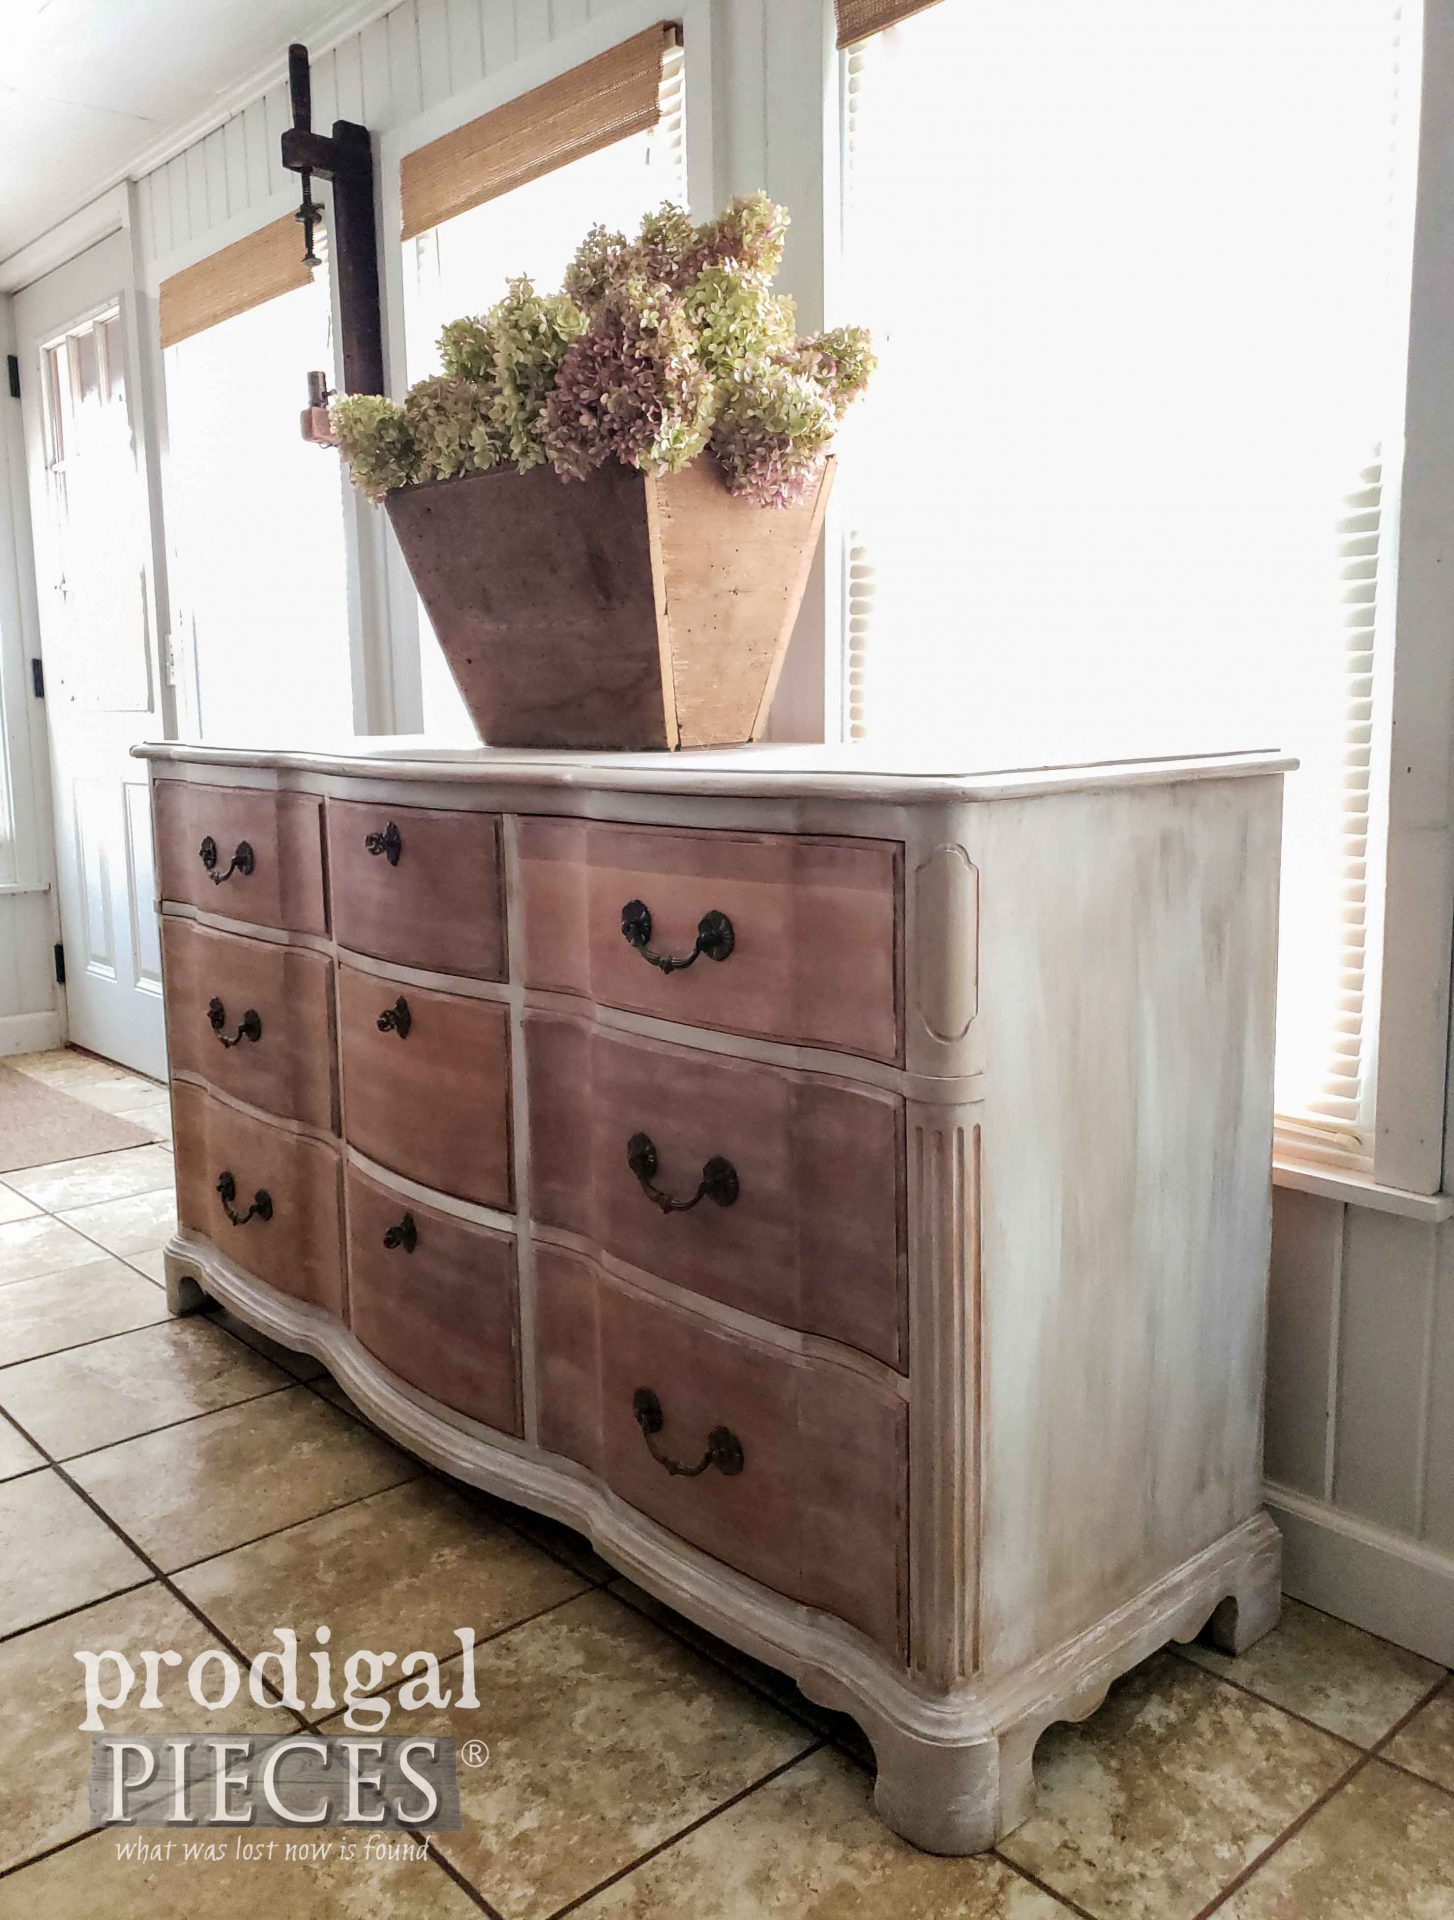 Side View Vintage Serpentine Dresser by Larissa of Prodigal Pieces | prodigalpieces.com #prodigalpieces #furniture #diy #home #homedecor #farmhouse